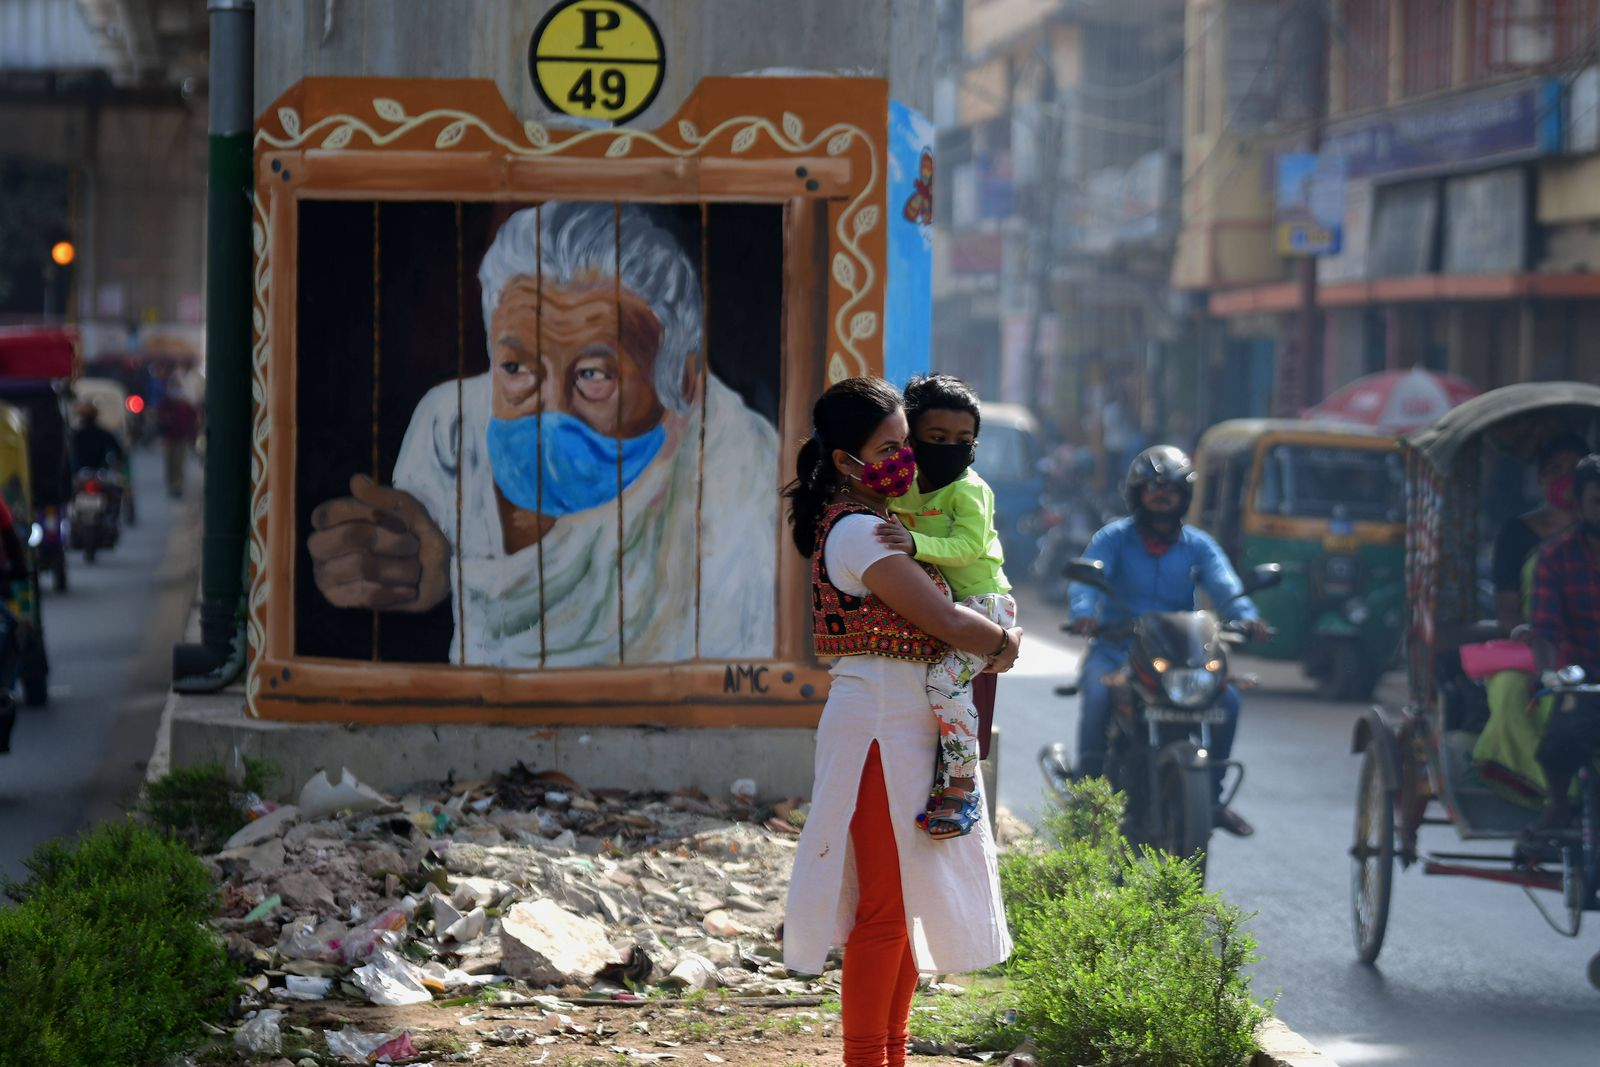 (201125) -- AGARTALA (INDIA), Nov. 25, 2020 -- A woman and a boy wearing face masks are seen in front of a mural in Agar